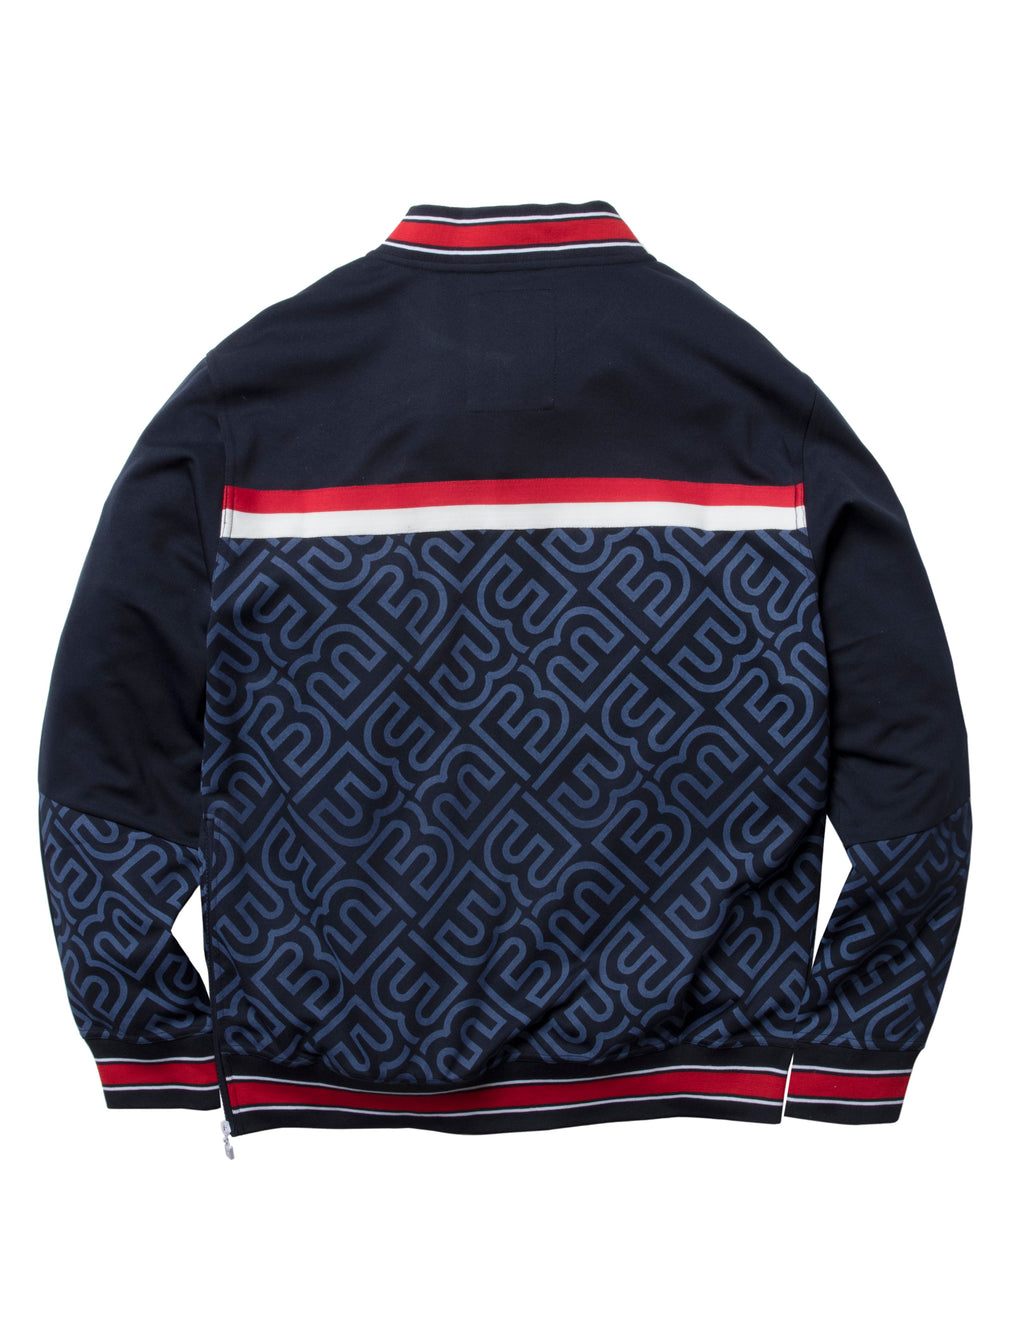 Pirate Ship Track Jacket